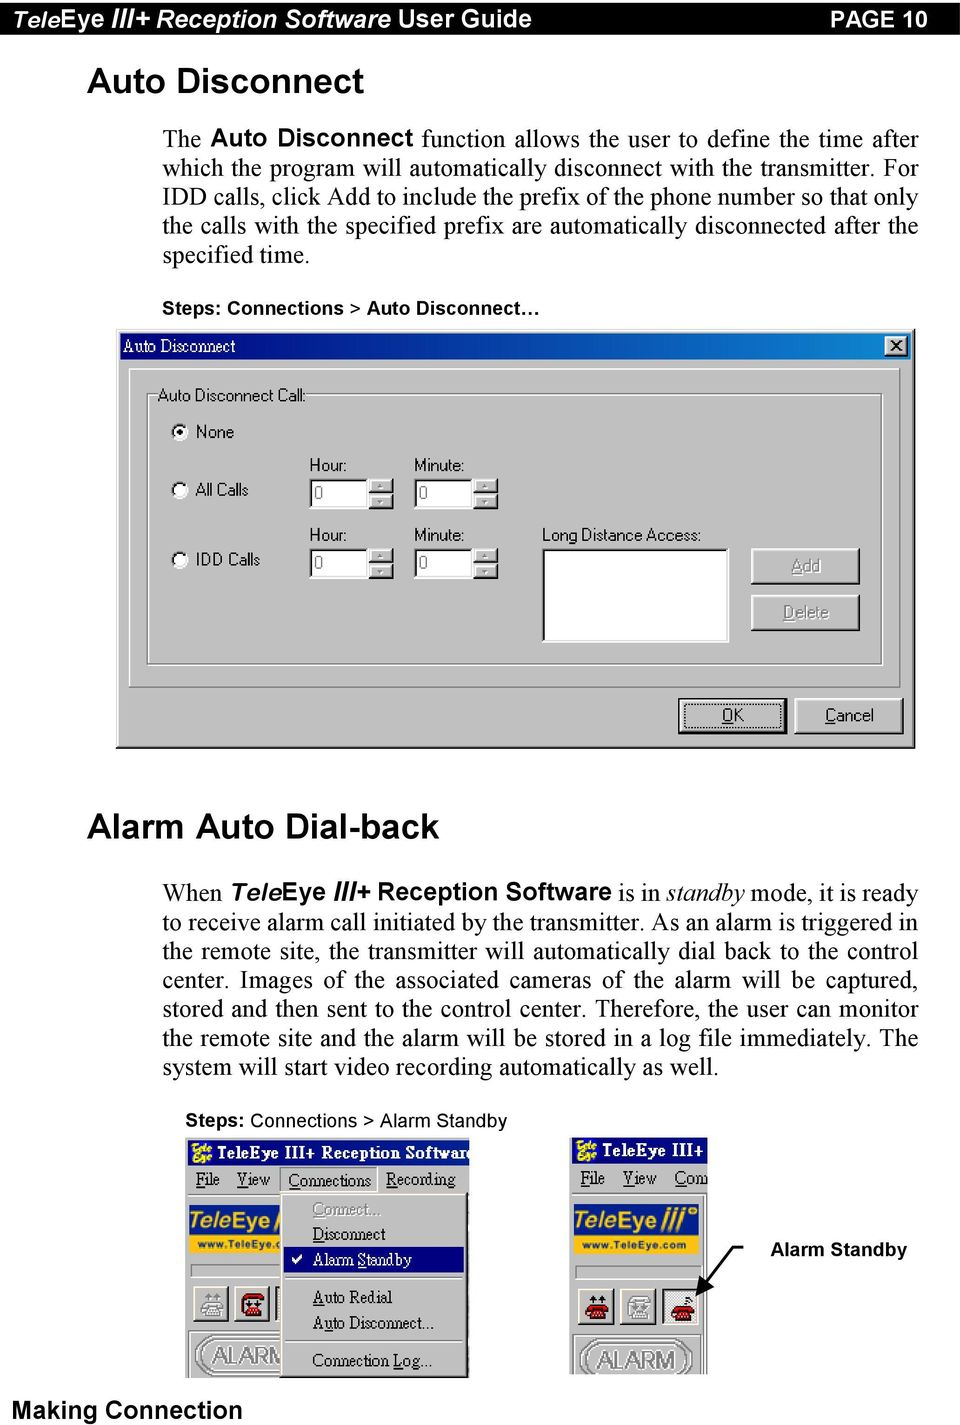 Steps: Connections > Auto Disconnect Alarm Auto Dial-back When TeleEye III+ Reception Software is in standby mode, it is ready to receive alarm call initiated by the transmitter.